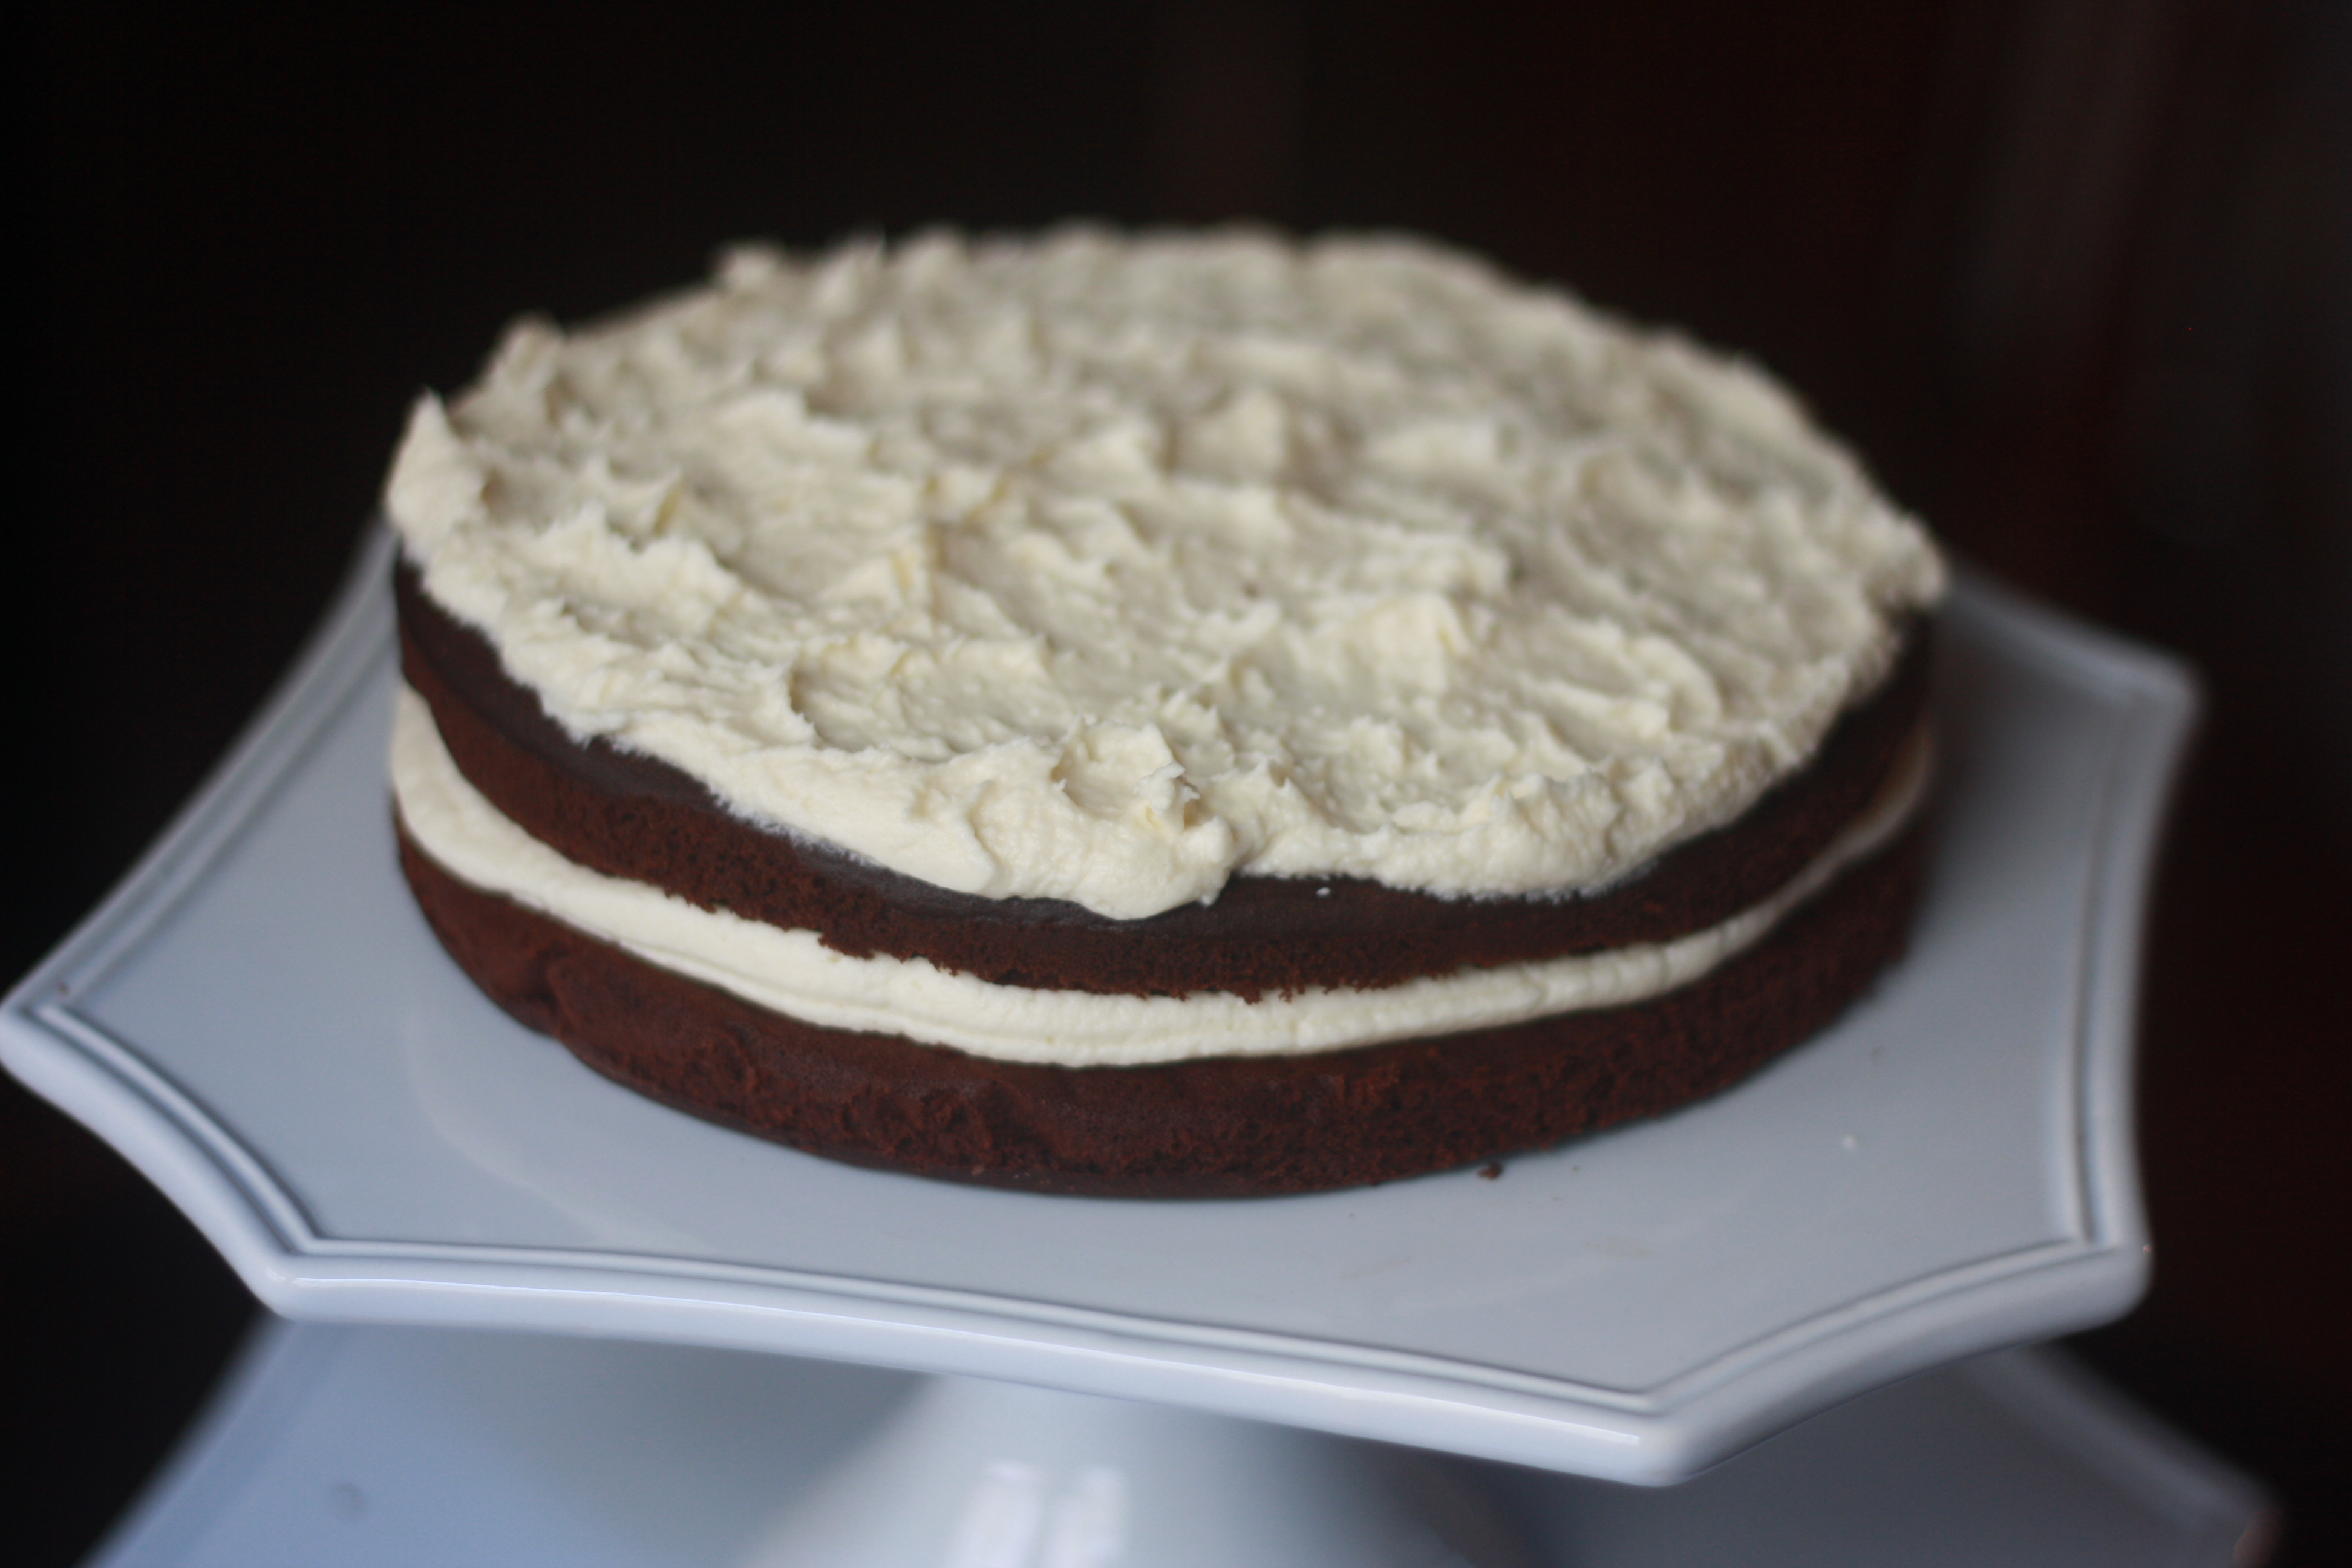 P3 Tara's Favorite Chocolate Cake (Low Carb, Sugar Free, Gluten Free)